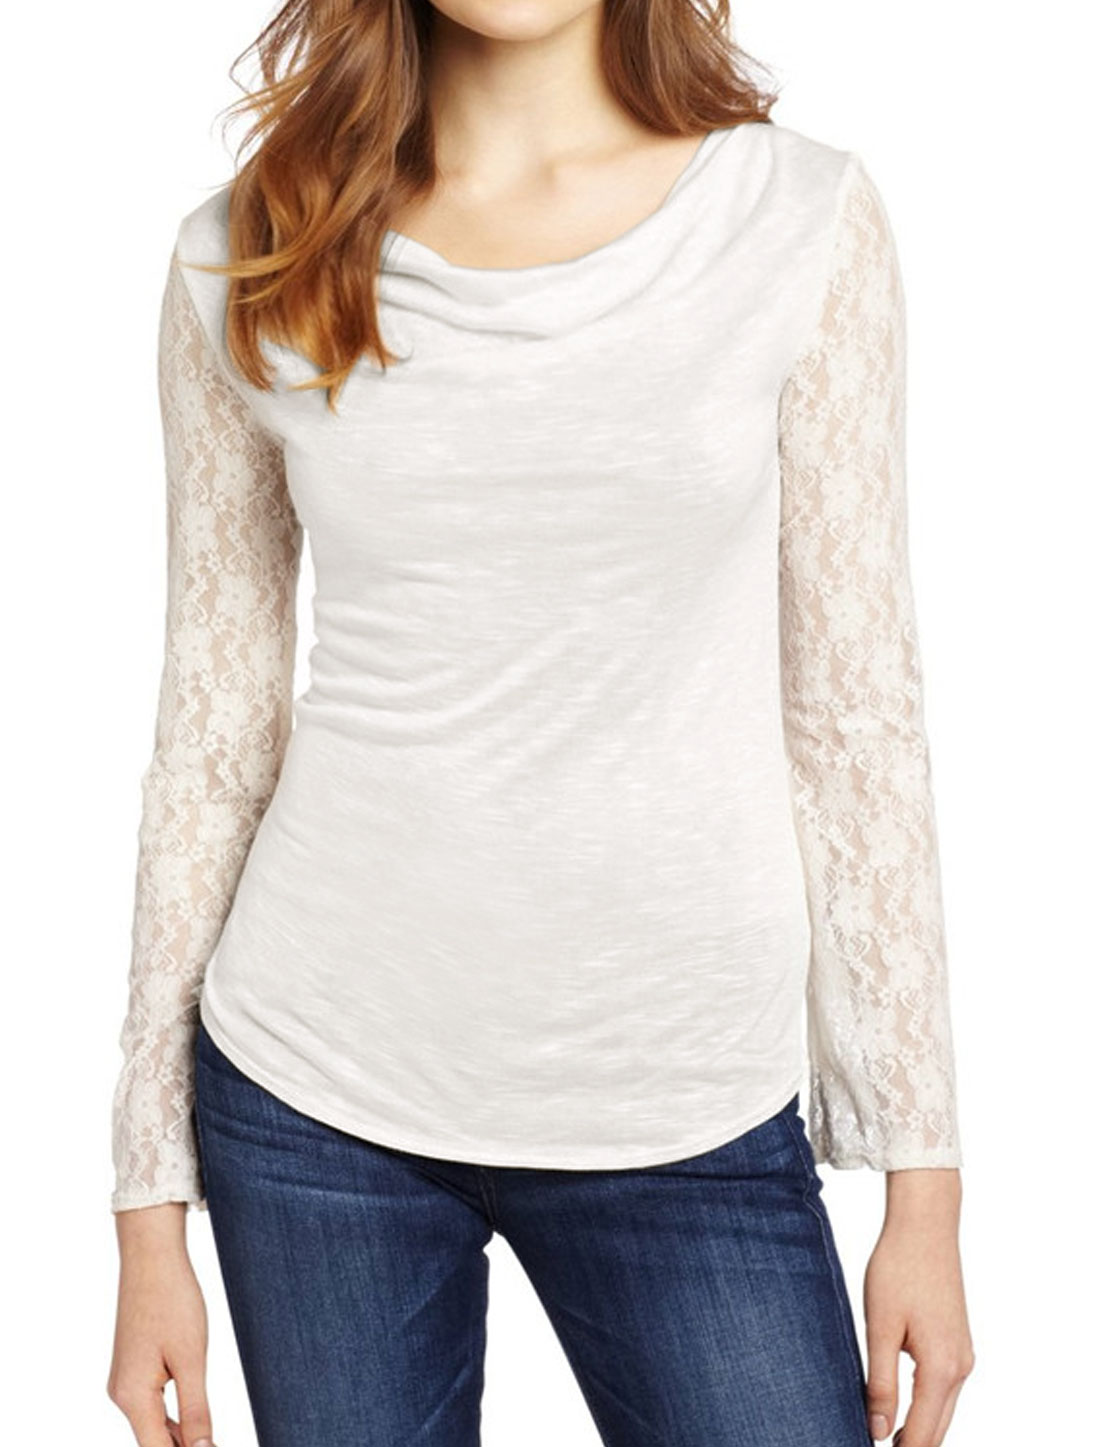 Women Cowl Neck Floral Lace Long Sleeves Slim Fit Top White M